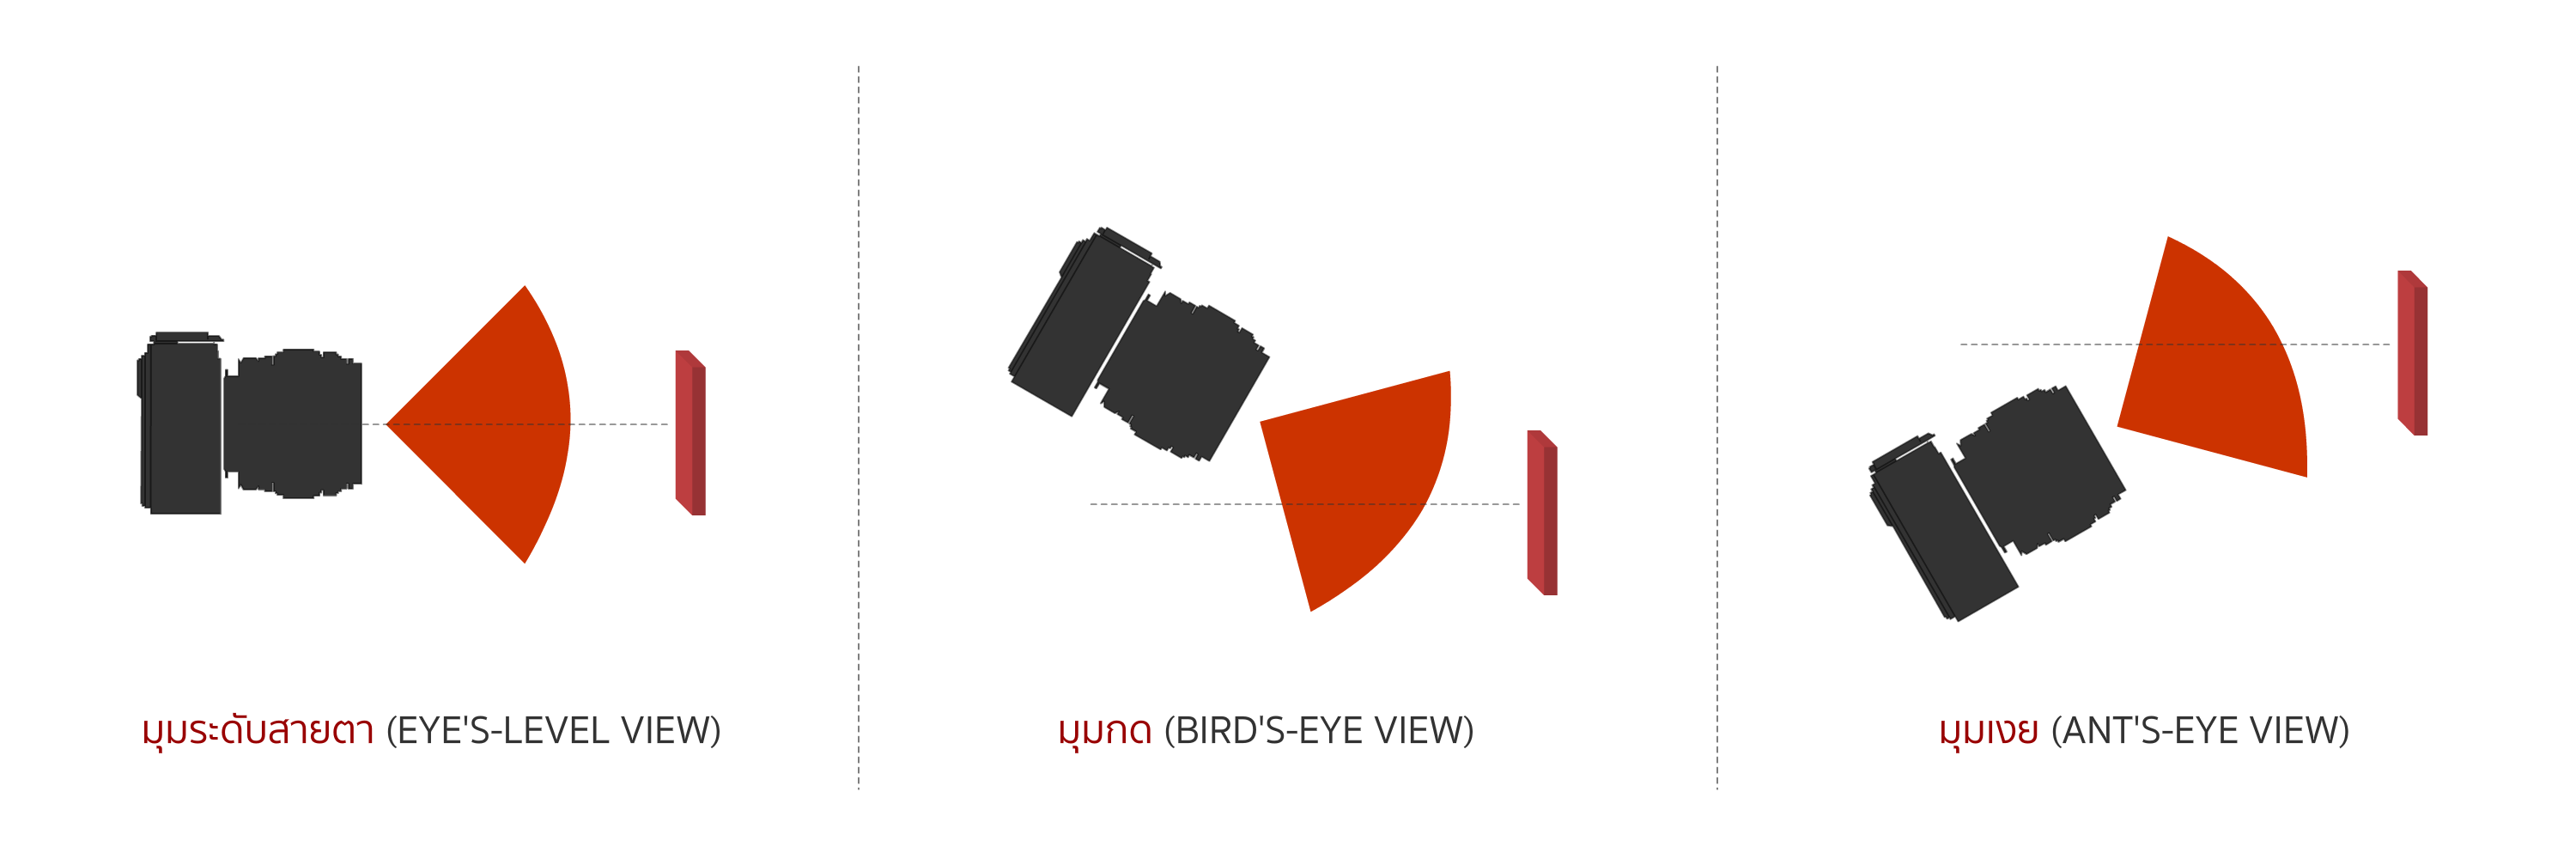 viewpointGraphic